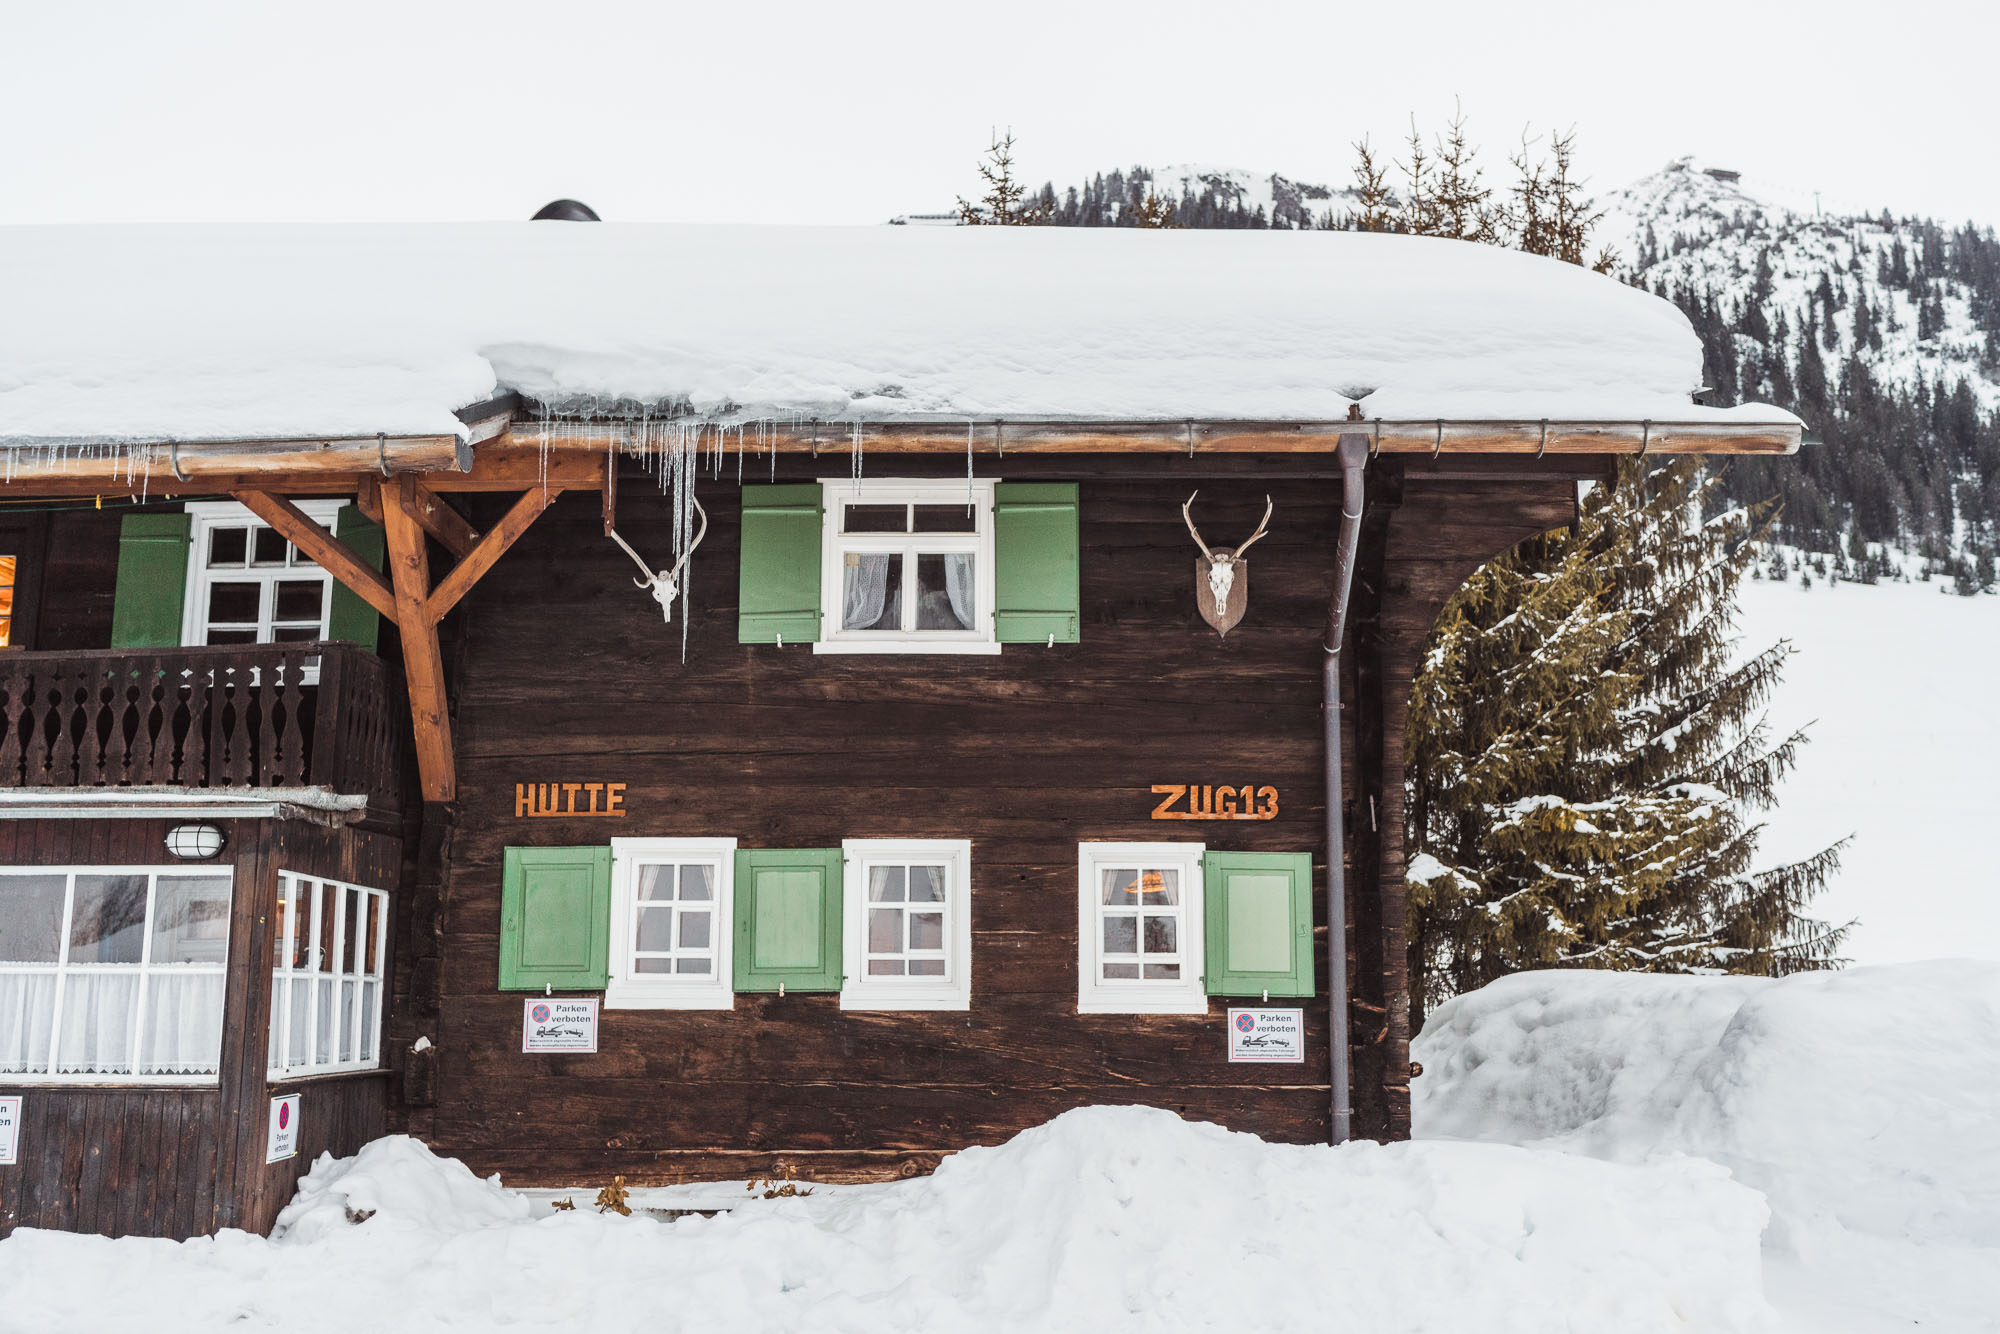 Cute Austrian Hotels and Guesthouses in Lech, Austria